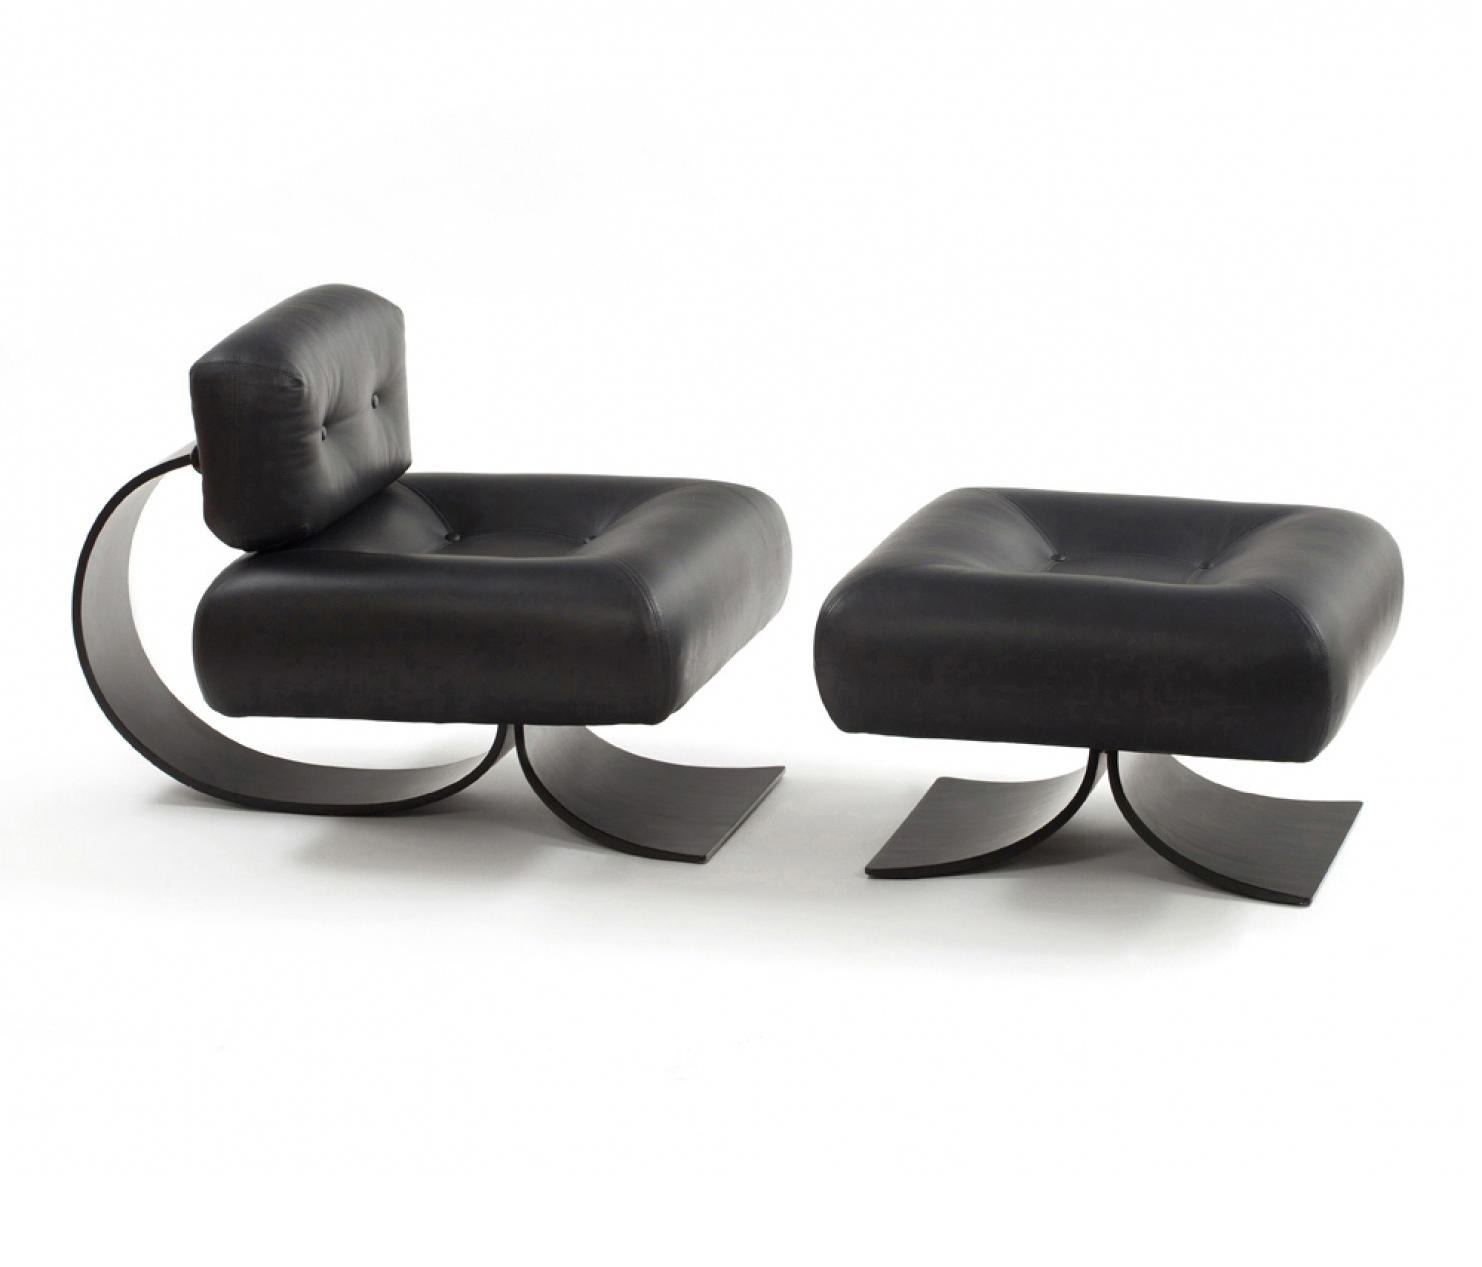 Iconic Chairs: The Top 10 Chairs Designed By Architects